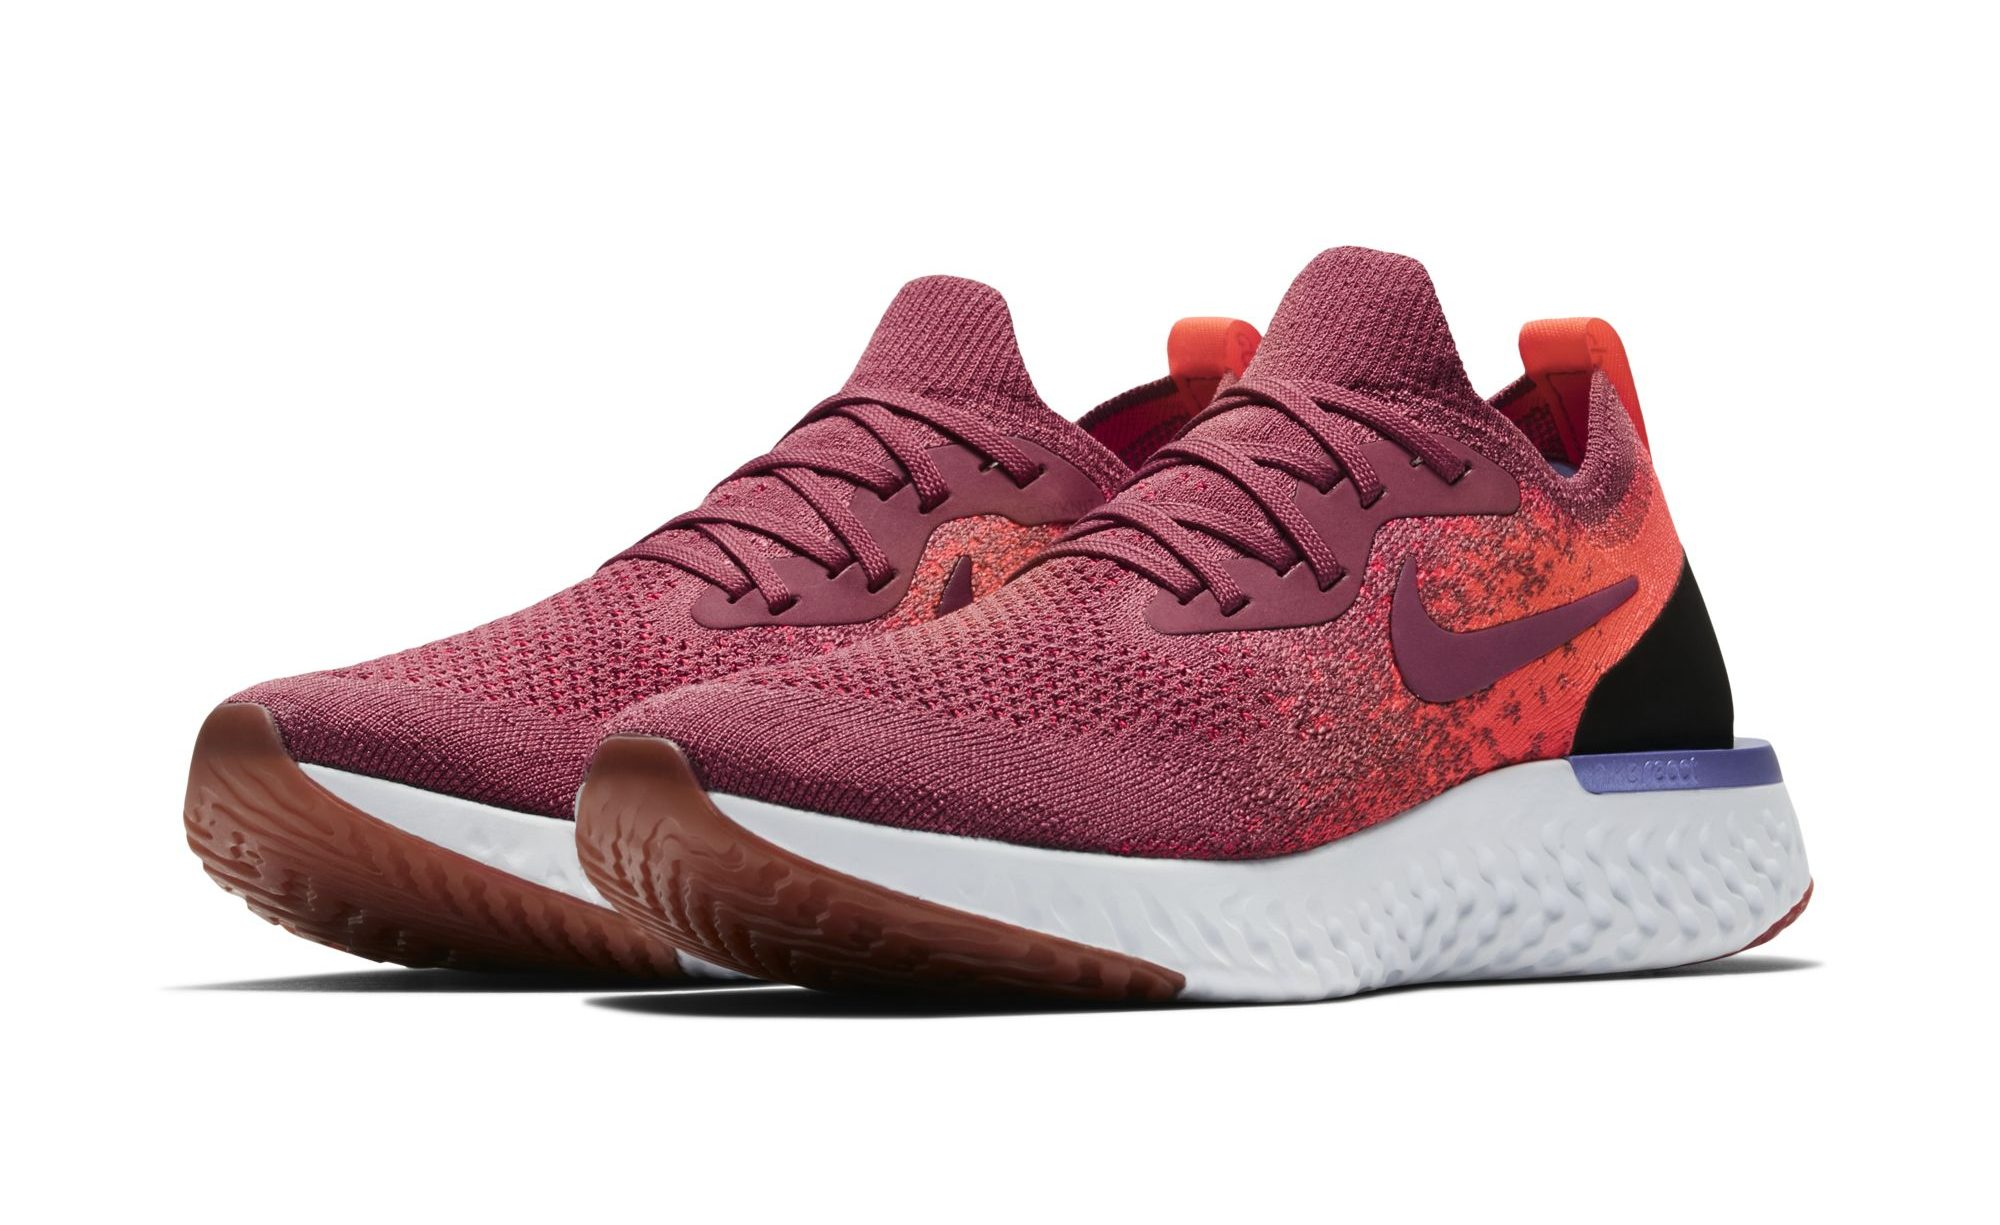 Three New Nike Epic React Flyknit Colorways are Dropping ...